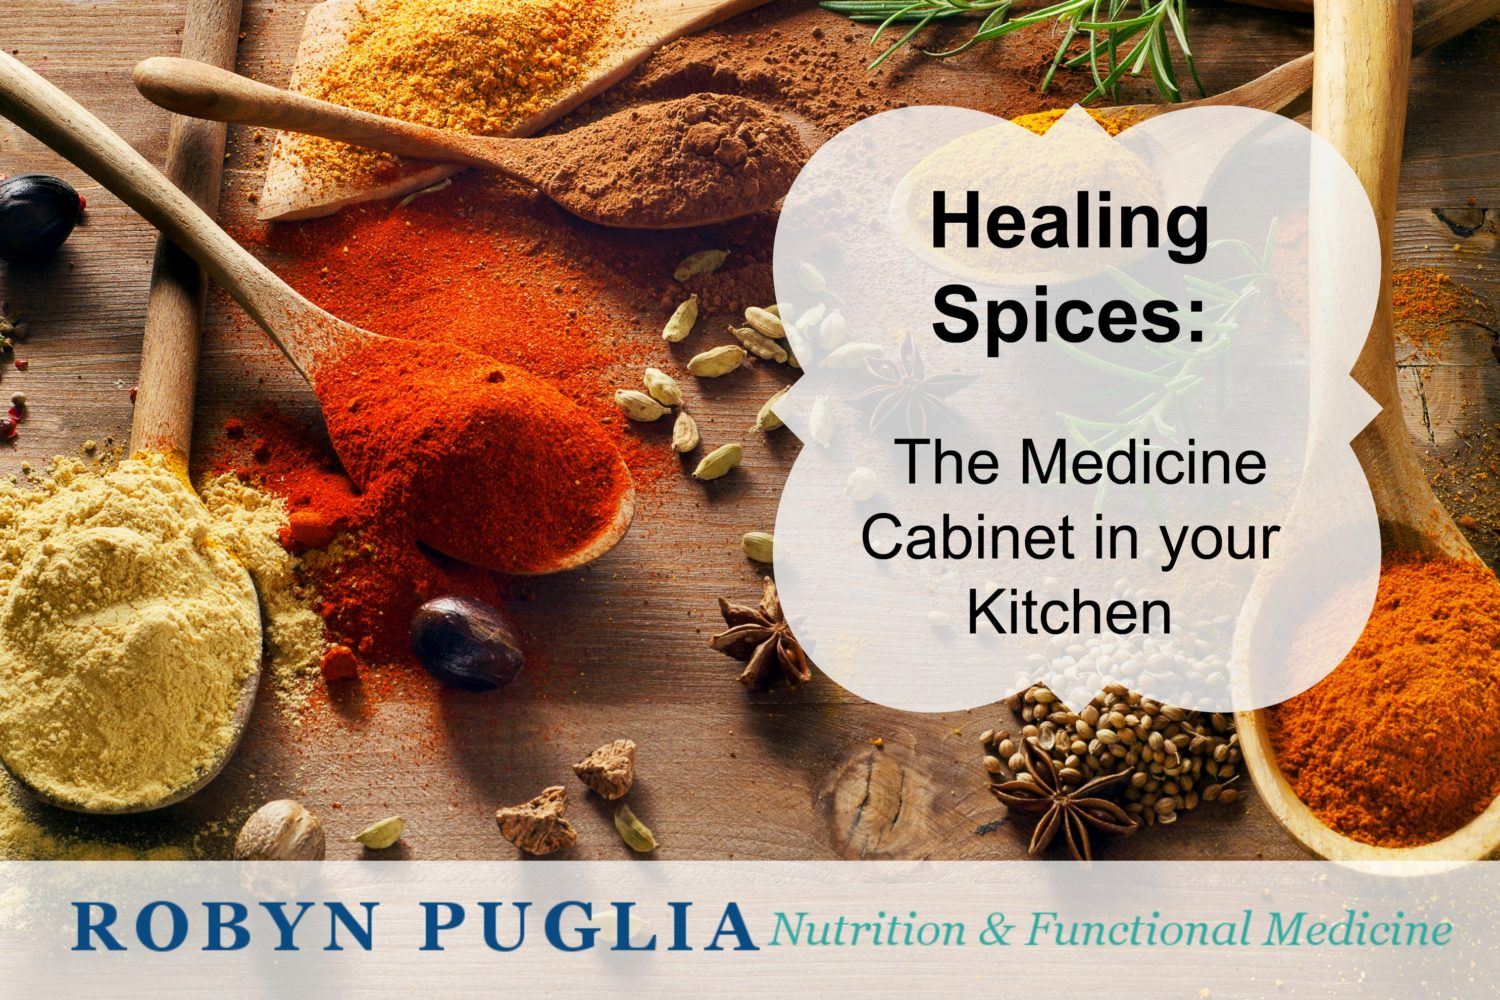 Healing Spices The Medicine Cabinet in your Kitchen